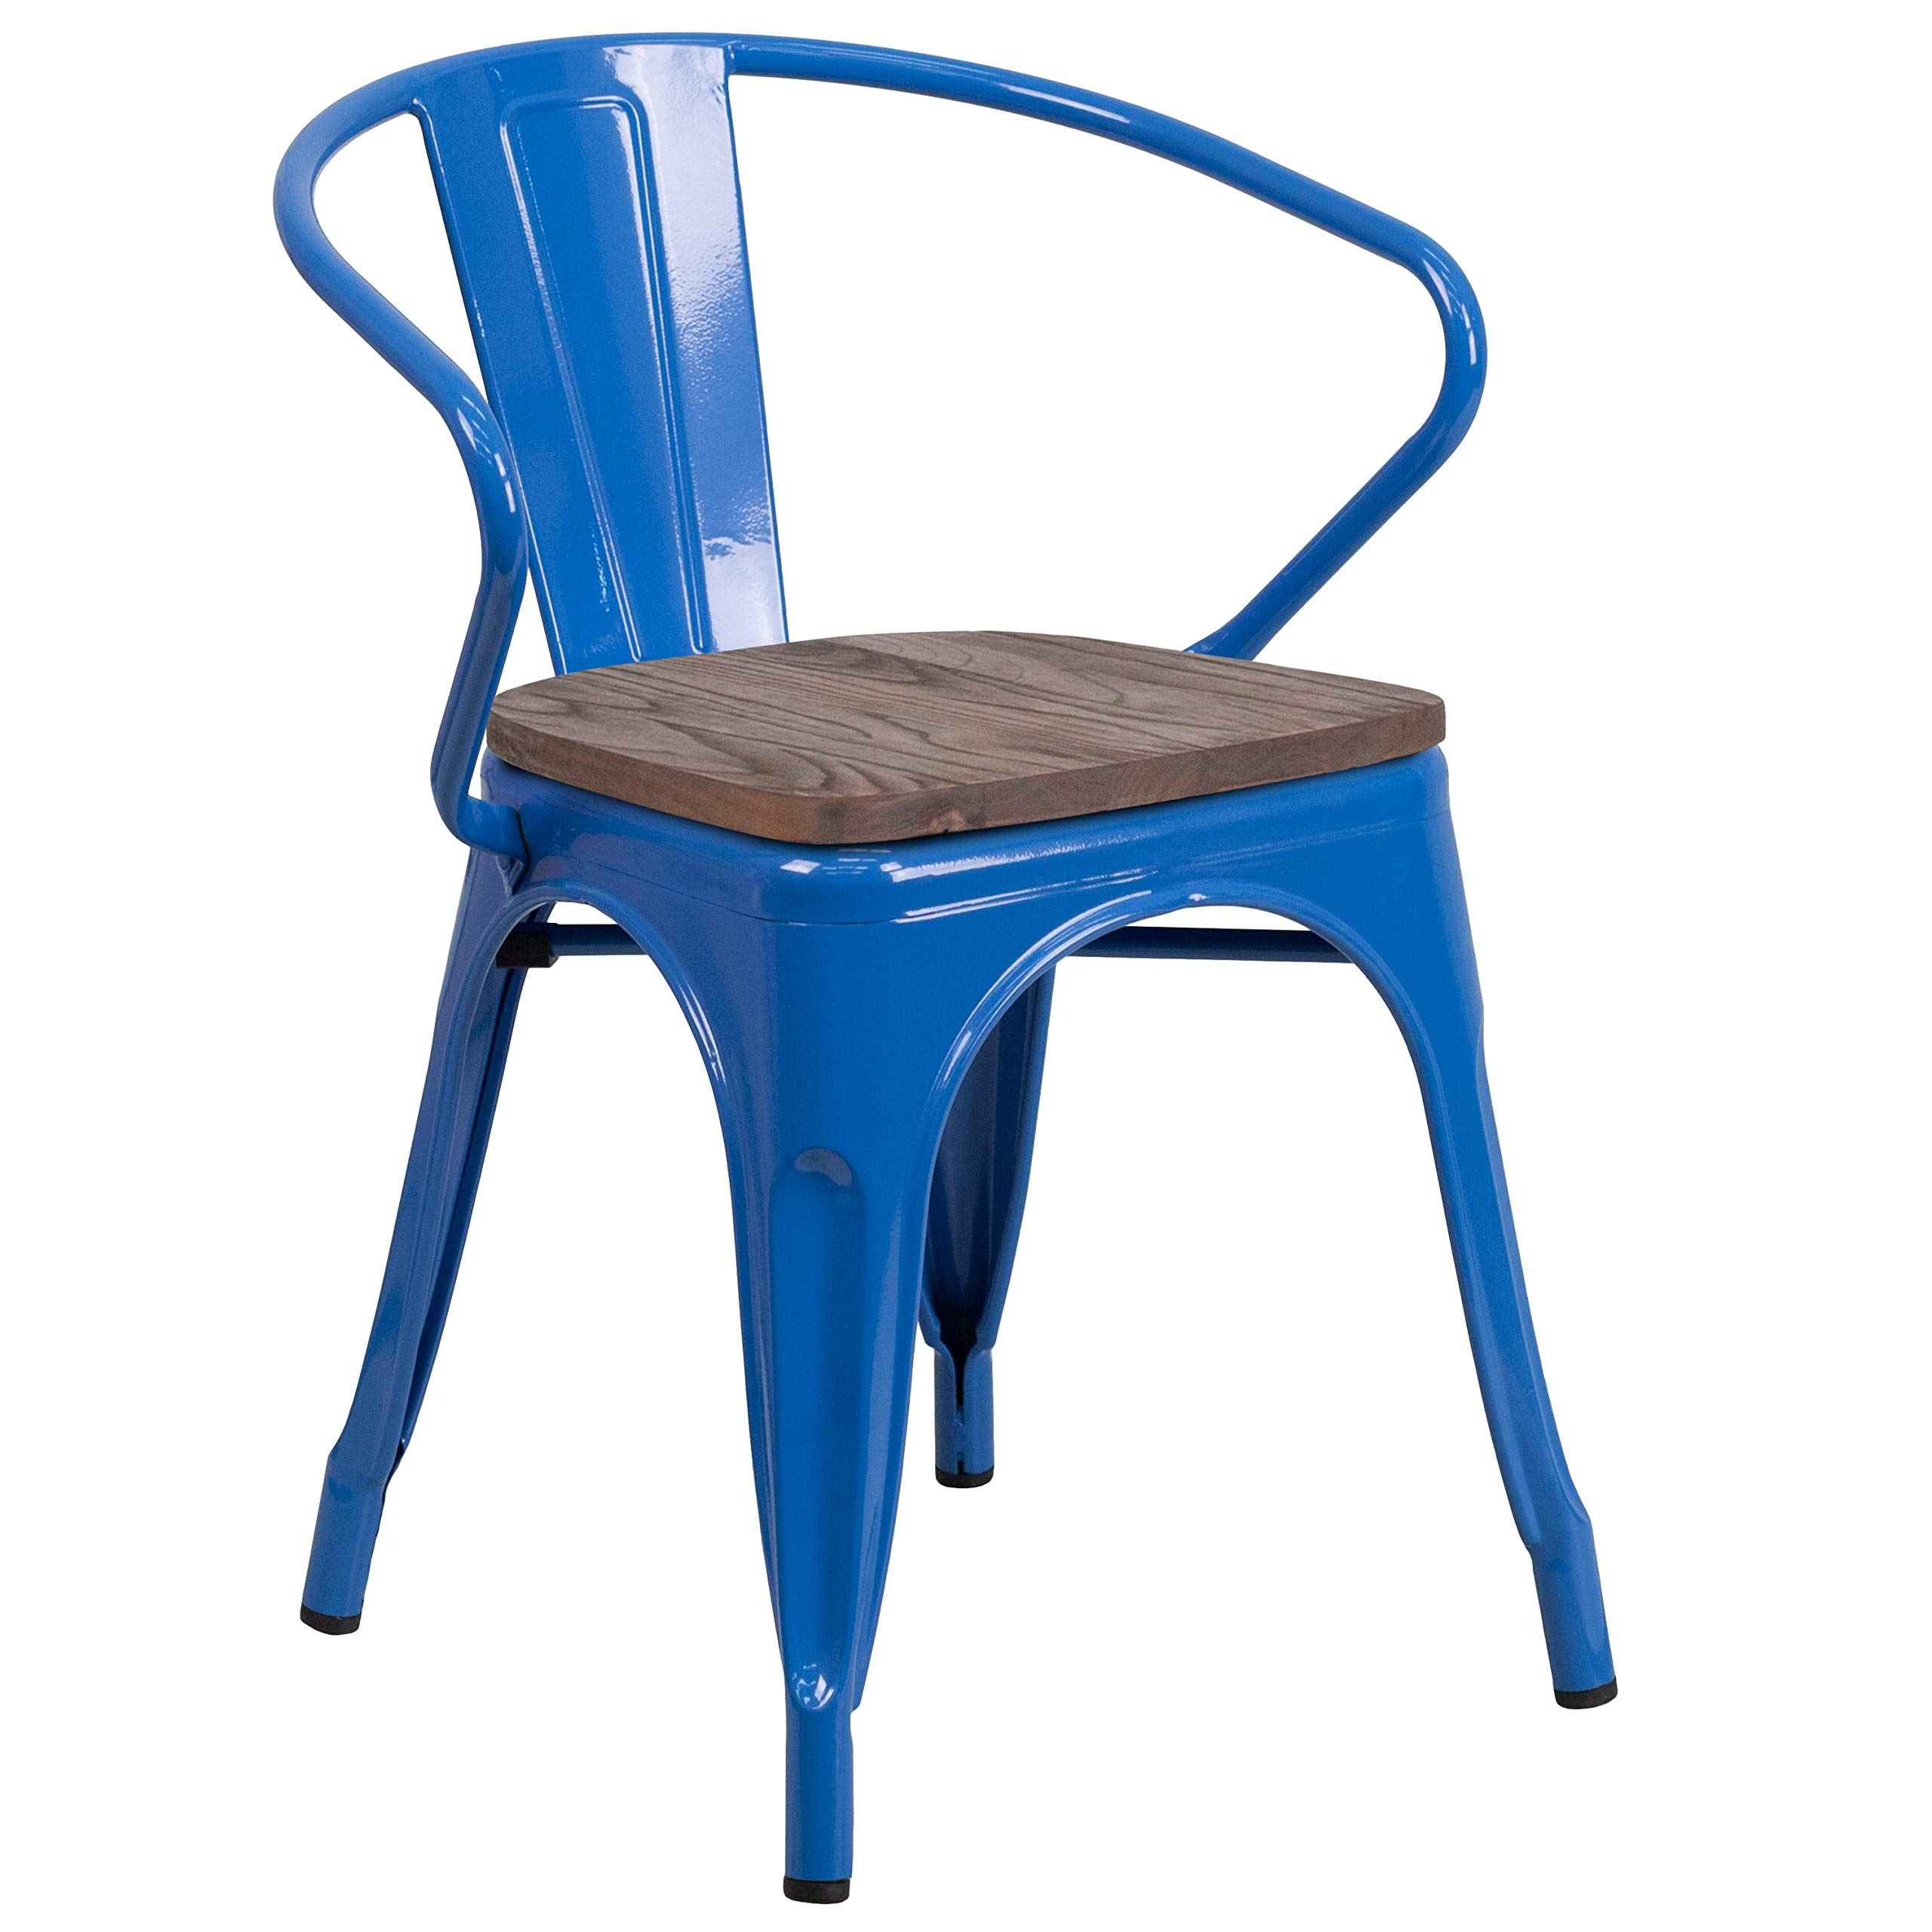 MFO Blue Metal Chair with Wood Seat and Arms by My Friendly Office